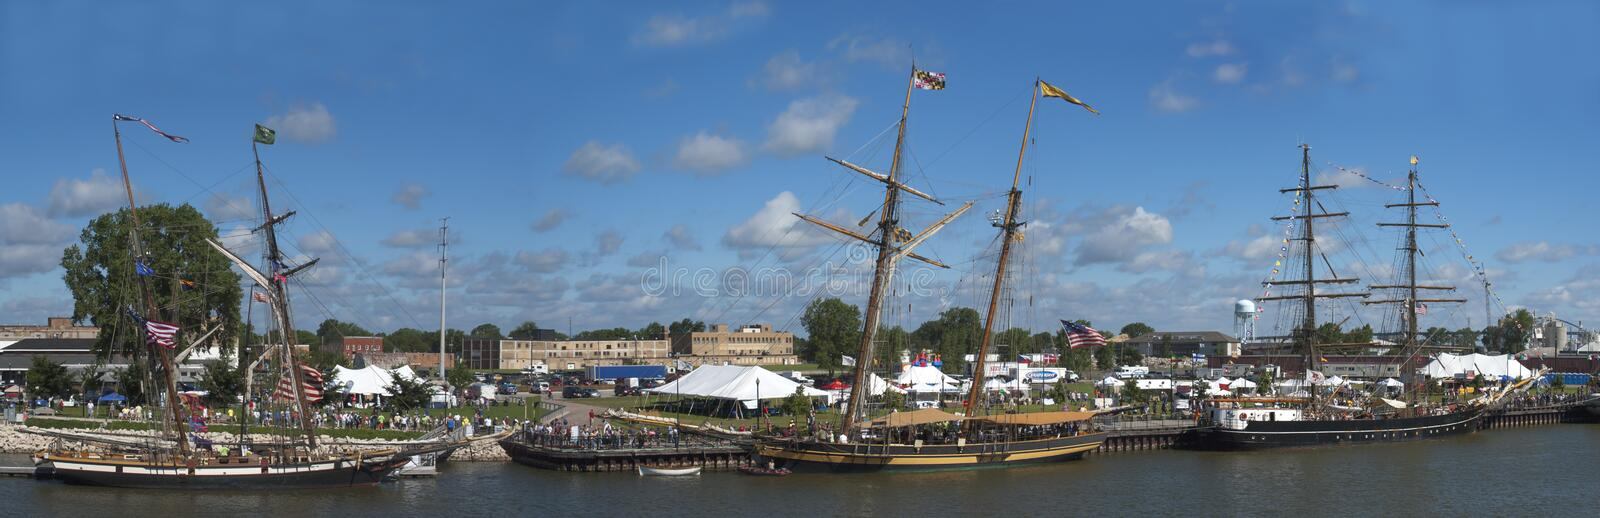 Festival grand de bateau de navigation panoramique, panorama images stock